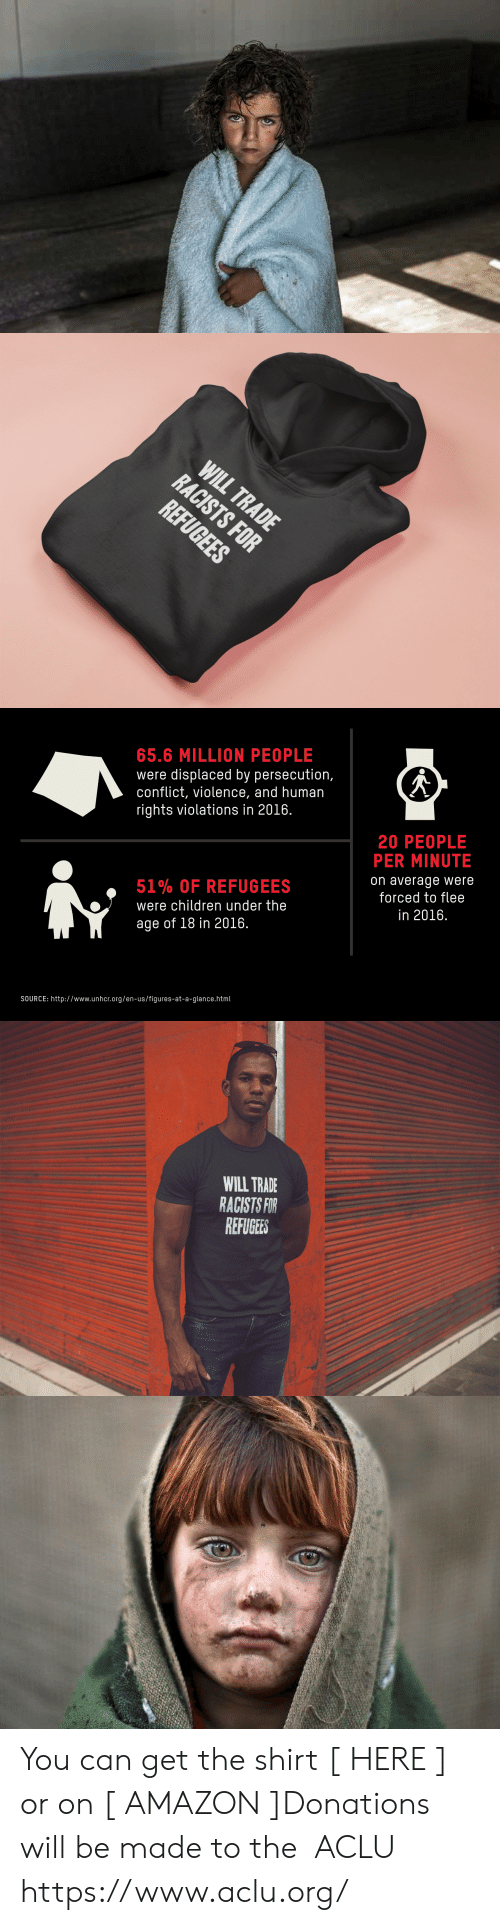 Racists: 65.6 MILLION PEOPLE  were displaced by persecution,  conflict, violence, and human  rights violations in 2016.  20 PEOPLE  PER MINUTE  on average were  forced to flee  in 2016.  51% OF REFUGEES  were children under the  age of 18 in 2016.  SOURCE: http://www.unhcr.org/en-us/figures-at-a-glance.html   WILL TRADE  RACISTS FOR  REFUGEES You can get the shirt [ HERE ] or on [ AMAZON ]Donations will be made to the   ACLU https://www.aclu.org/